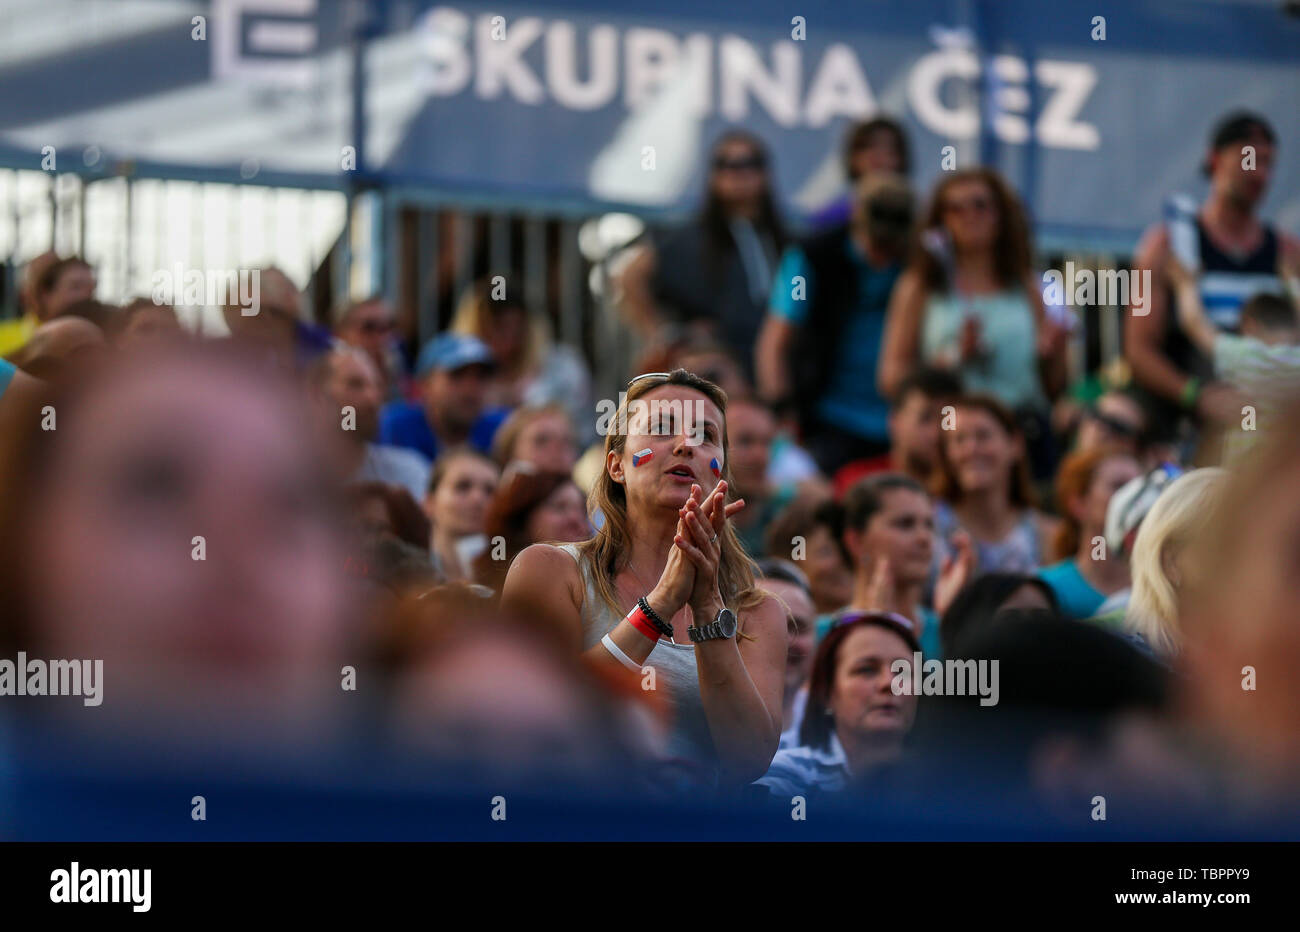 Ostrava, Czech Republic. 01st June, 2019. Fans are seen during the four-star J&T Banka Ostrava Beach Open 2019, part of the FIVB Beach Volleyball World Tour, in Ostrava, Czech Republic, on June 1, 2019. Credit: Petr Sznapka/CTK Photo/Alamy Live News Stock Photo